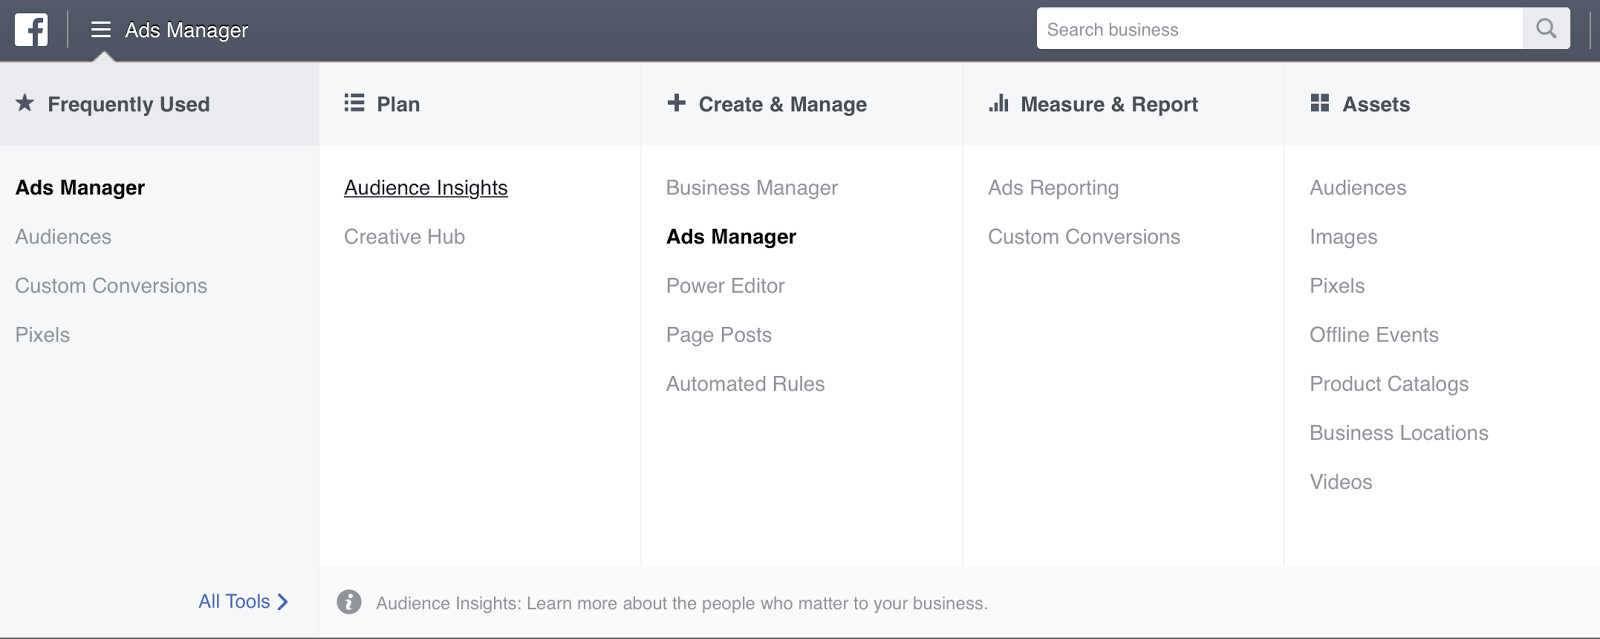 Access Audience Insights in Facebook Ads Manager